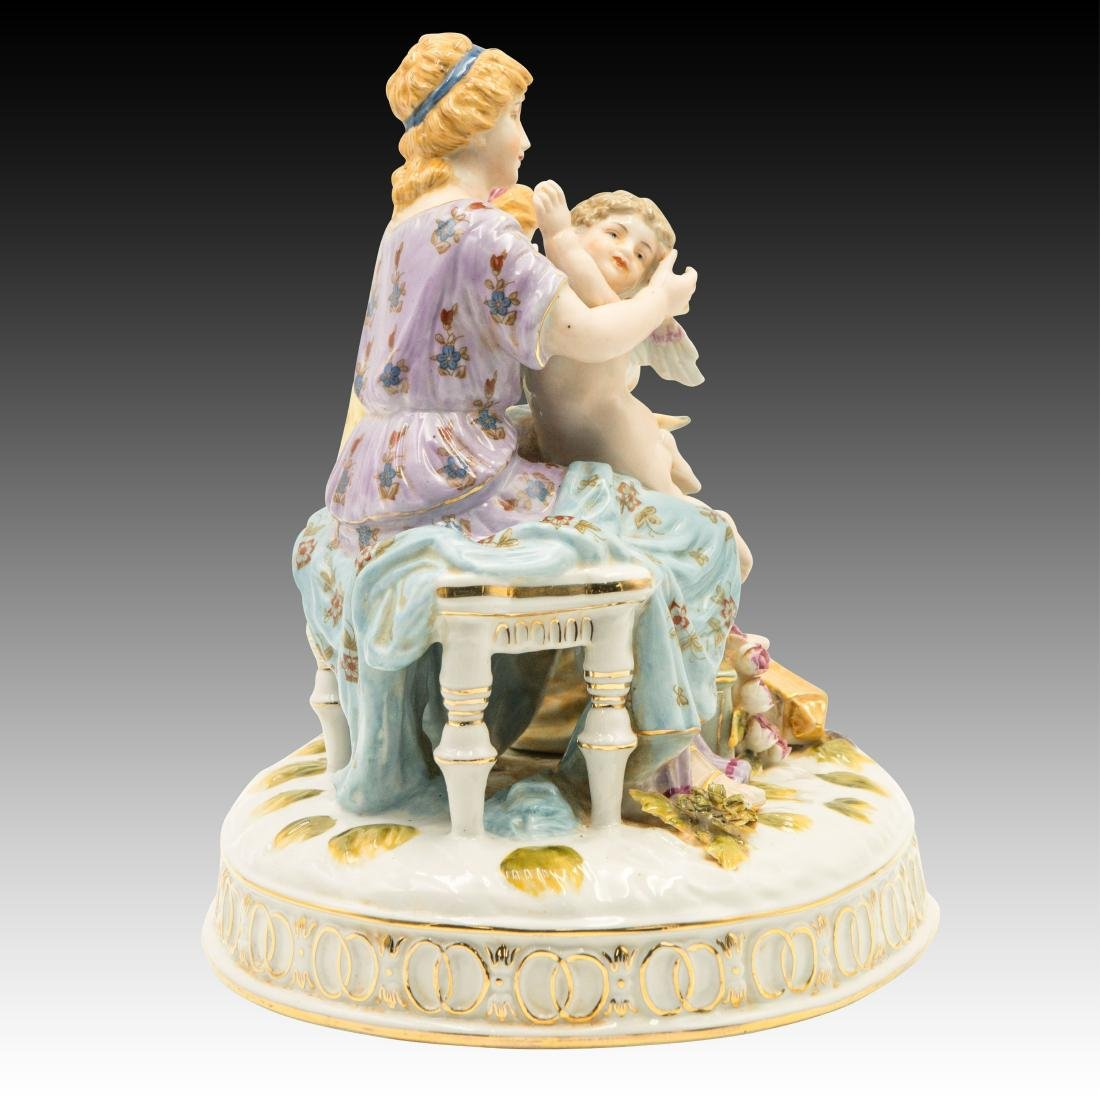 Two Women and a Cherub and Birds Figurine - 4